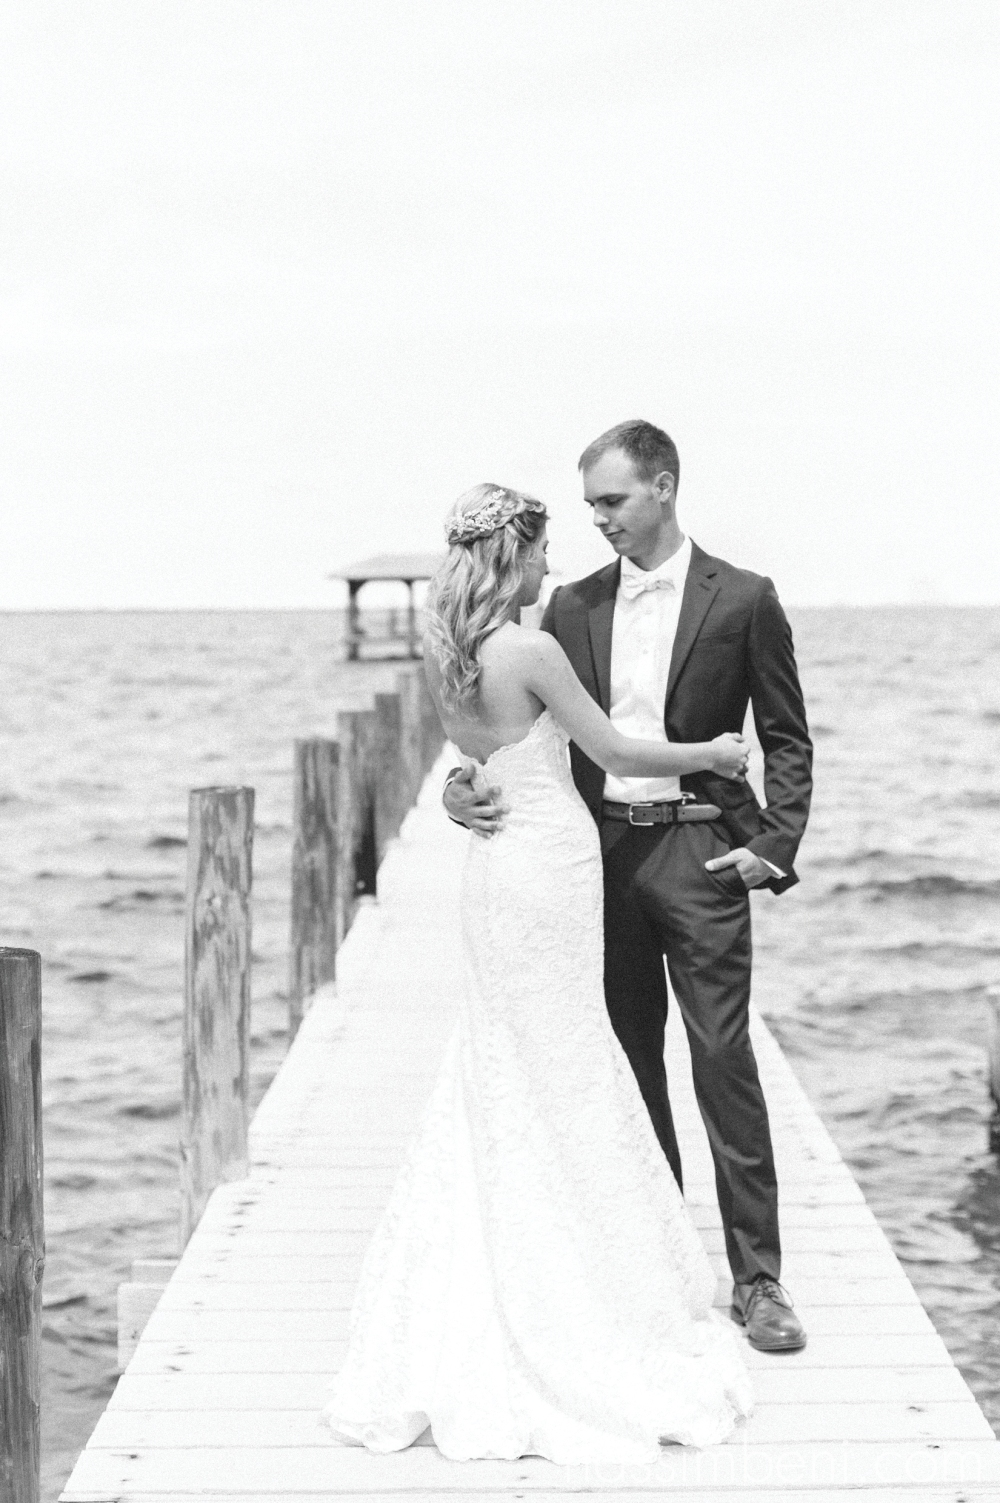 backyard-florida-private-venue-wedding-nassimbeni-photography-30